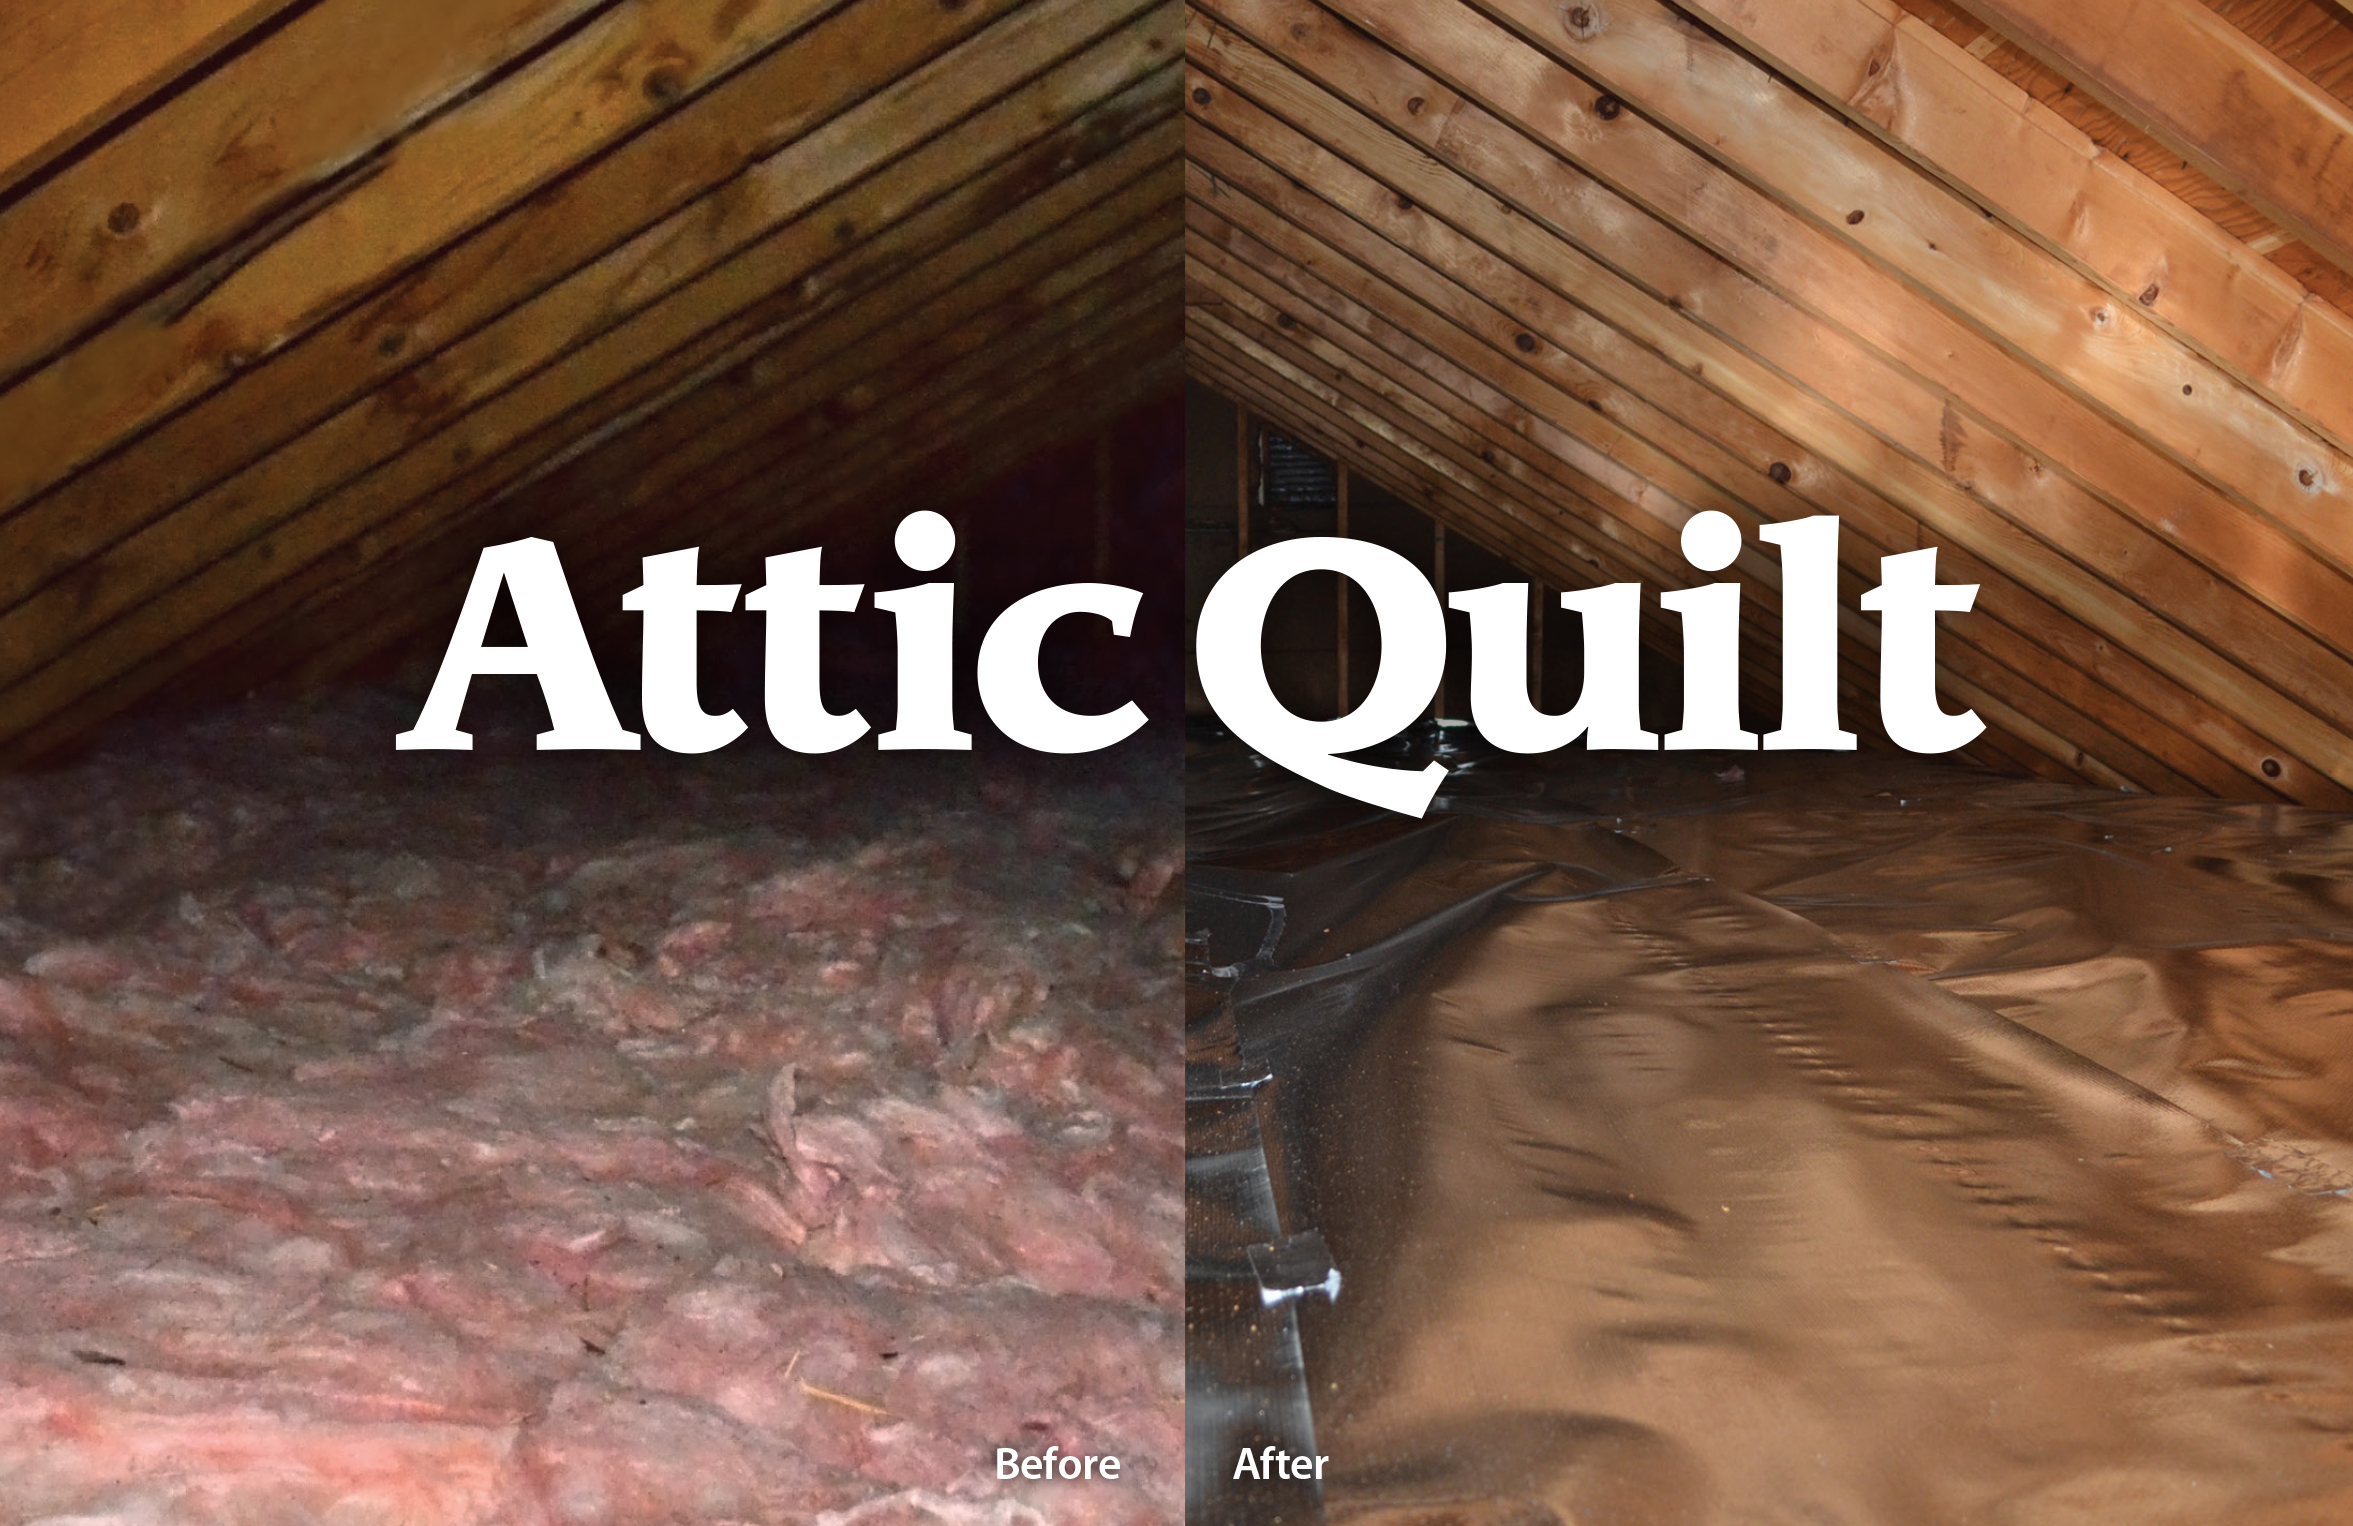 Attic Quilt before after photo